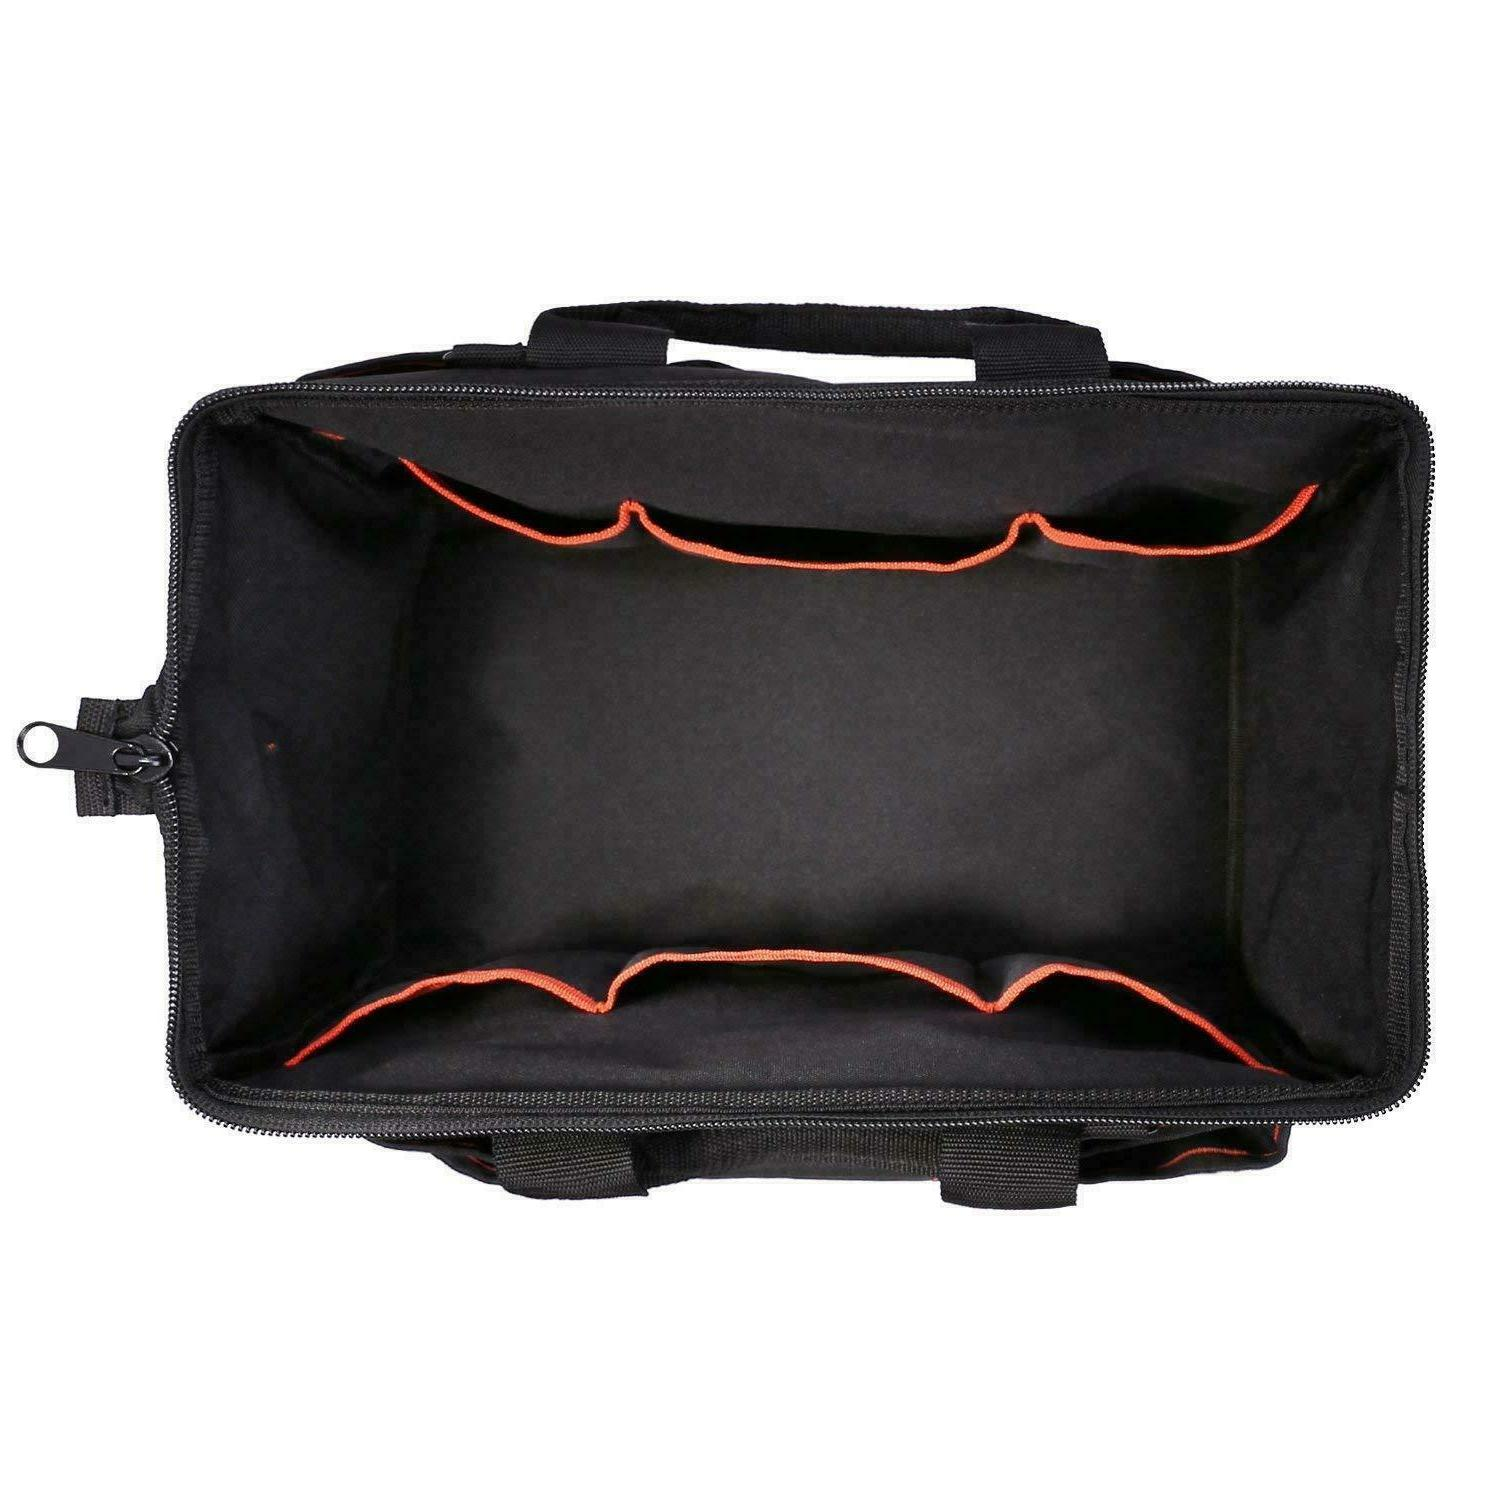 "DEKO Tool Bag 8.6"" x9.4"" Mouth Large 7 Duty"